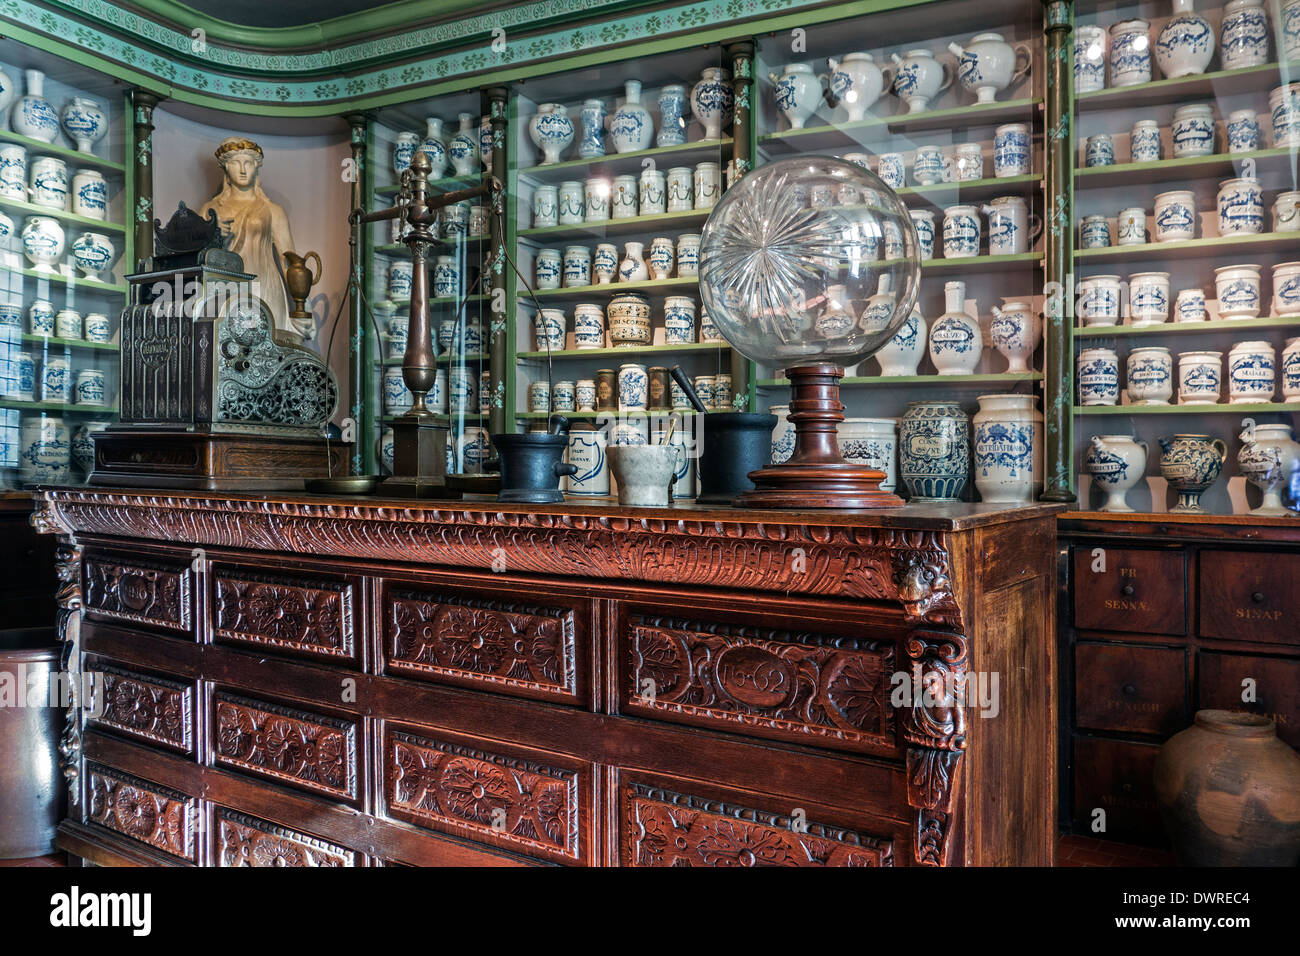 Medicines in Delft pottery of antique pharmacy / chemist's shop of the early 20th century, House of Alijn museum, Ghent, Belgium - Stock Image